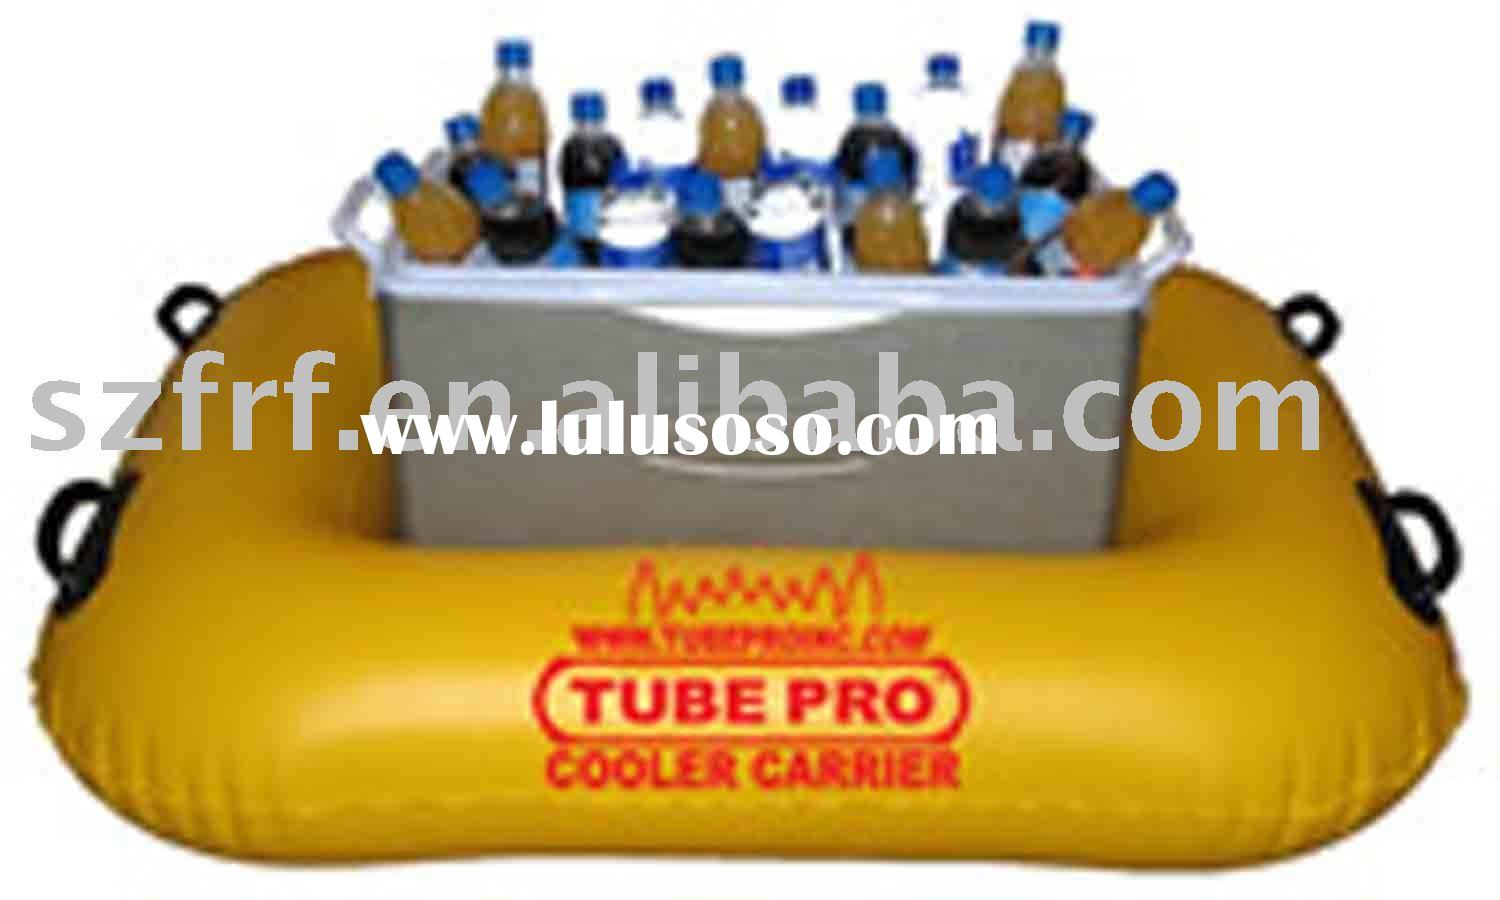 inflatable float cooler carrier,inflatable tube cooler carrier,inflatable floating cooler carrier